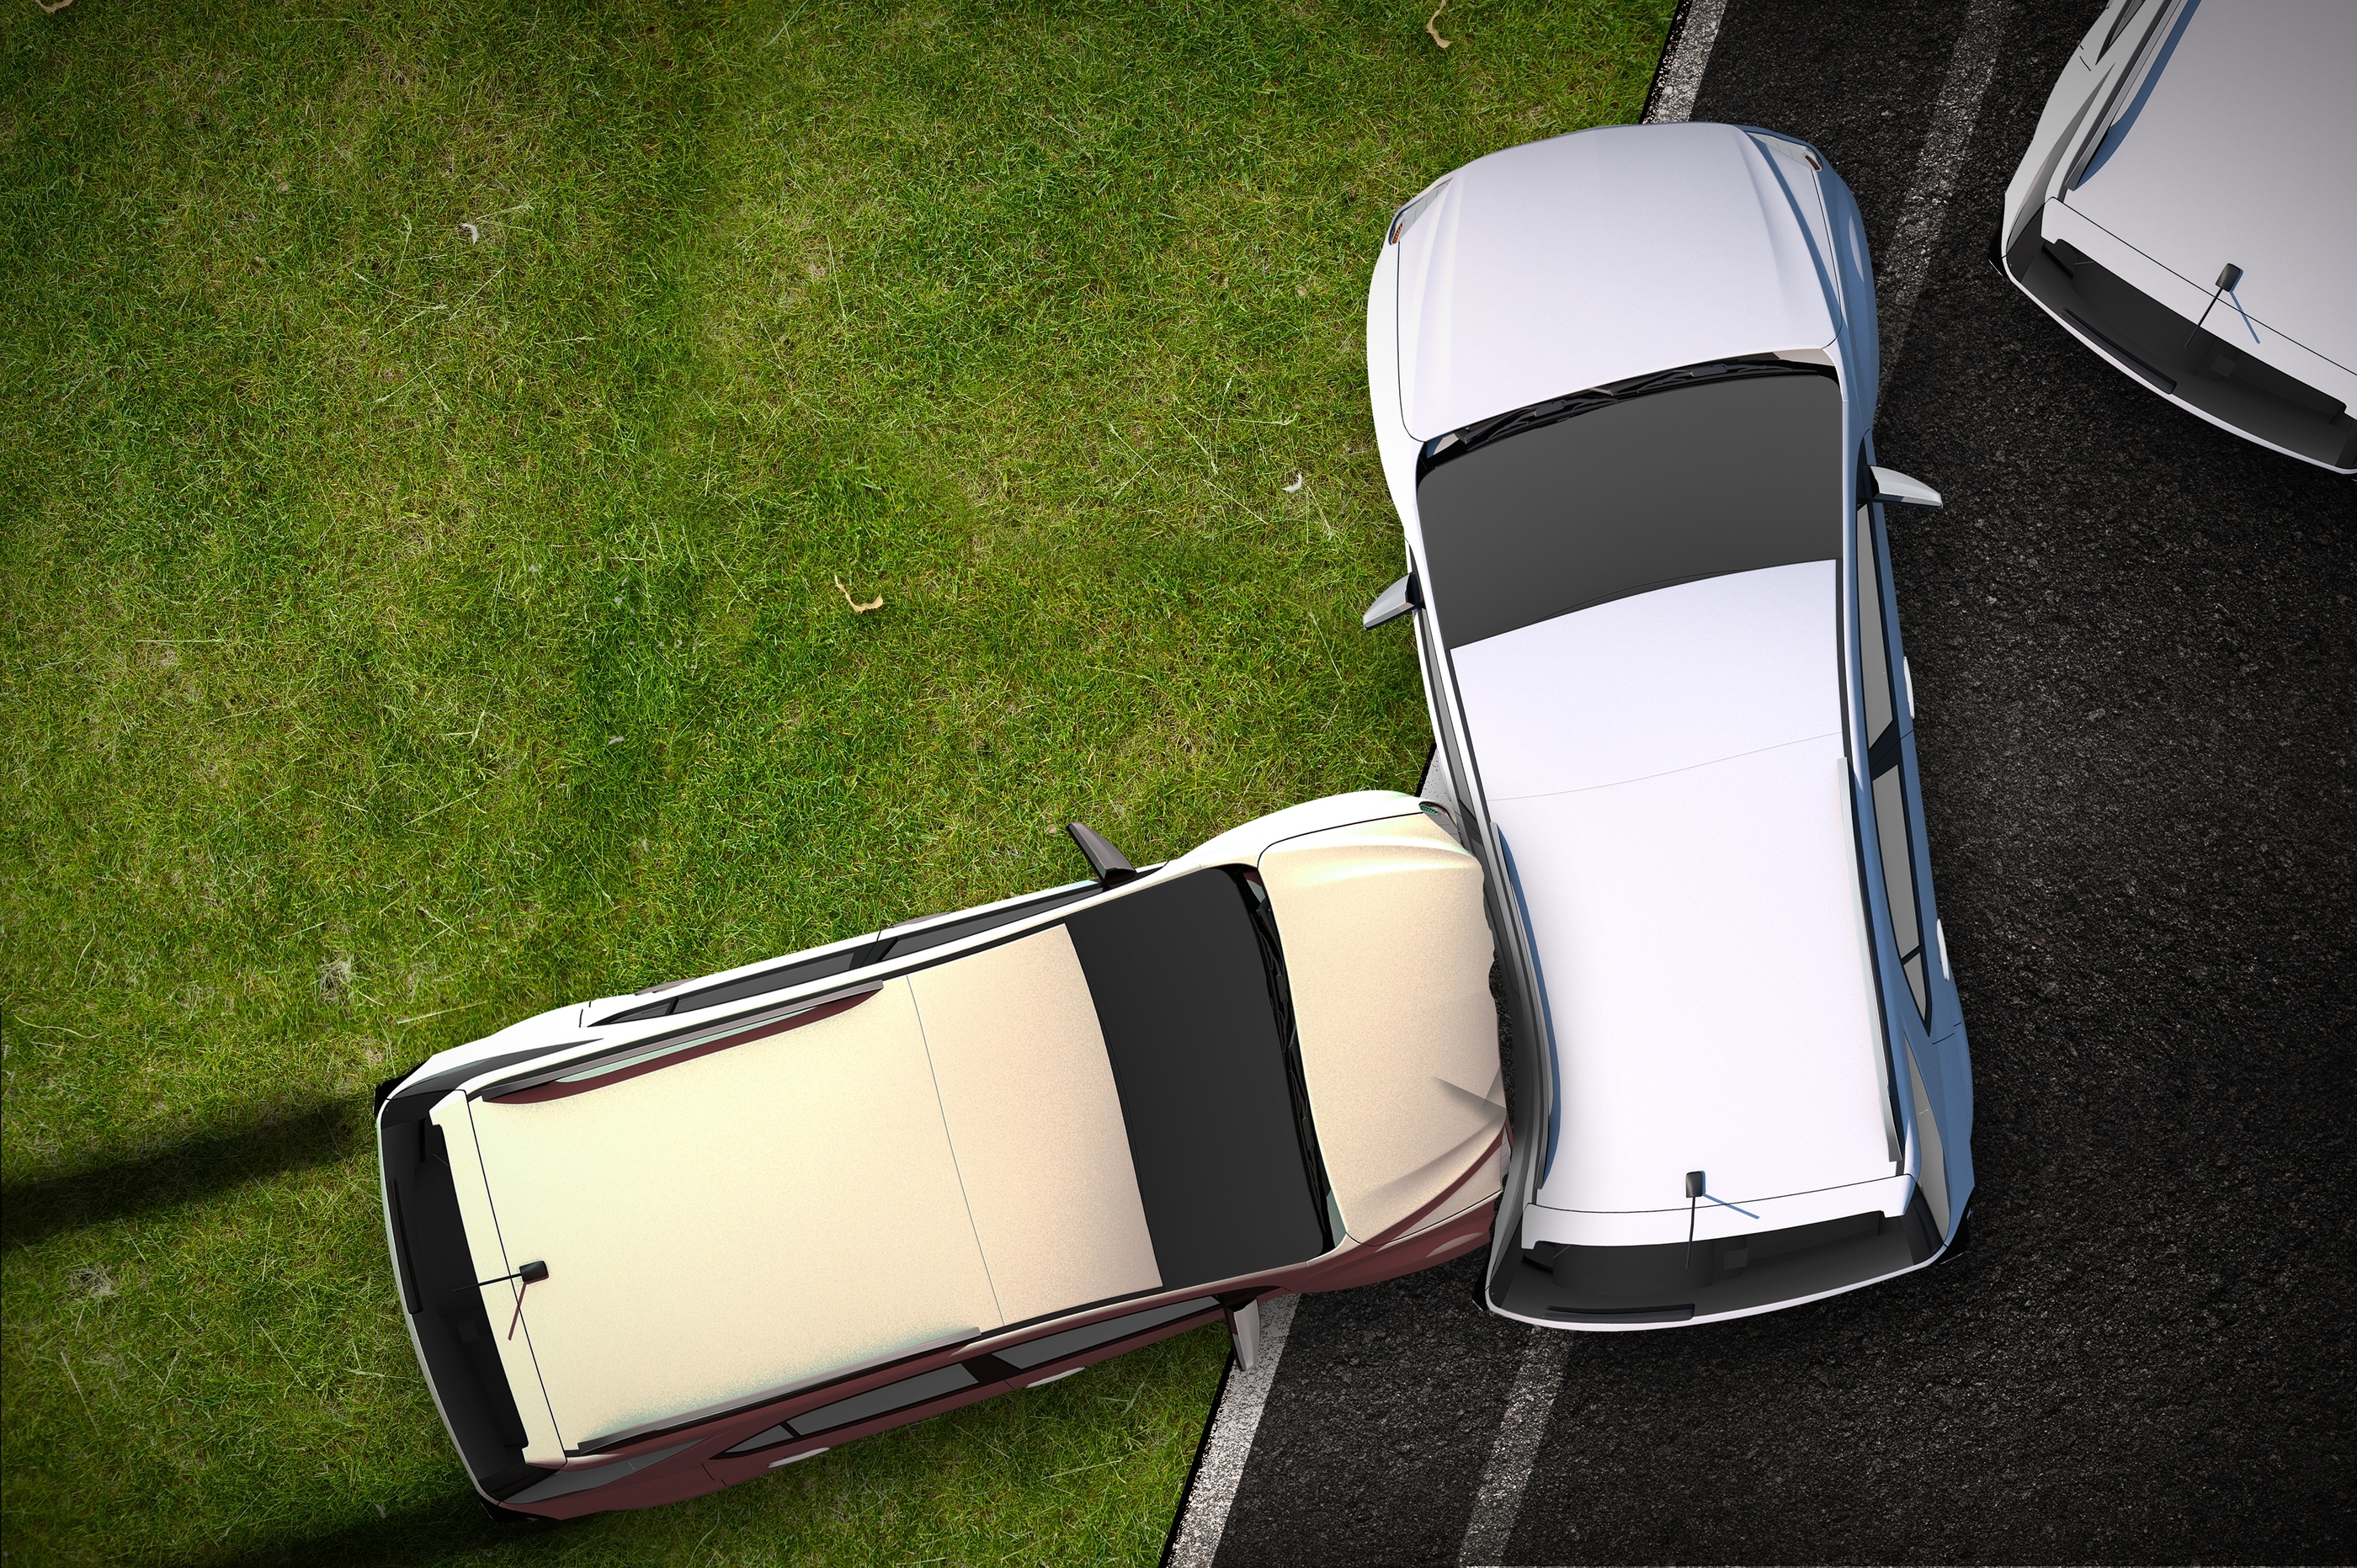 side collision attorneys in utah